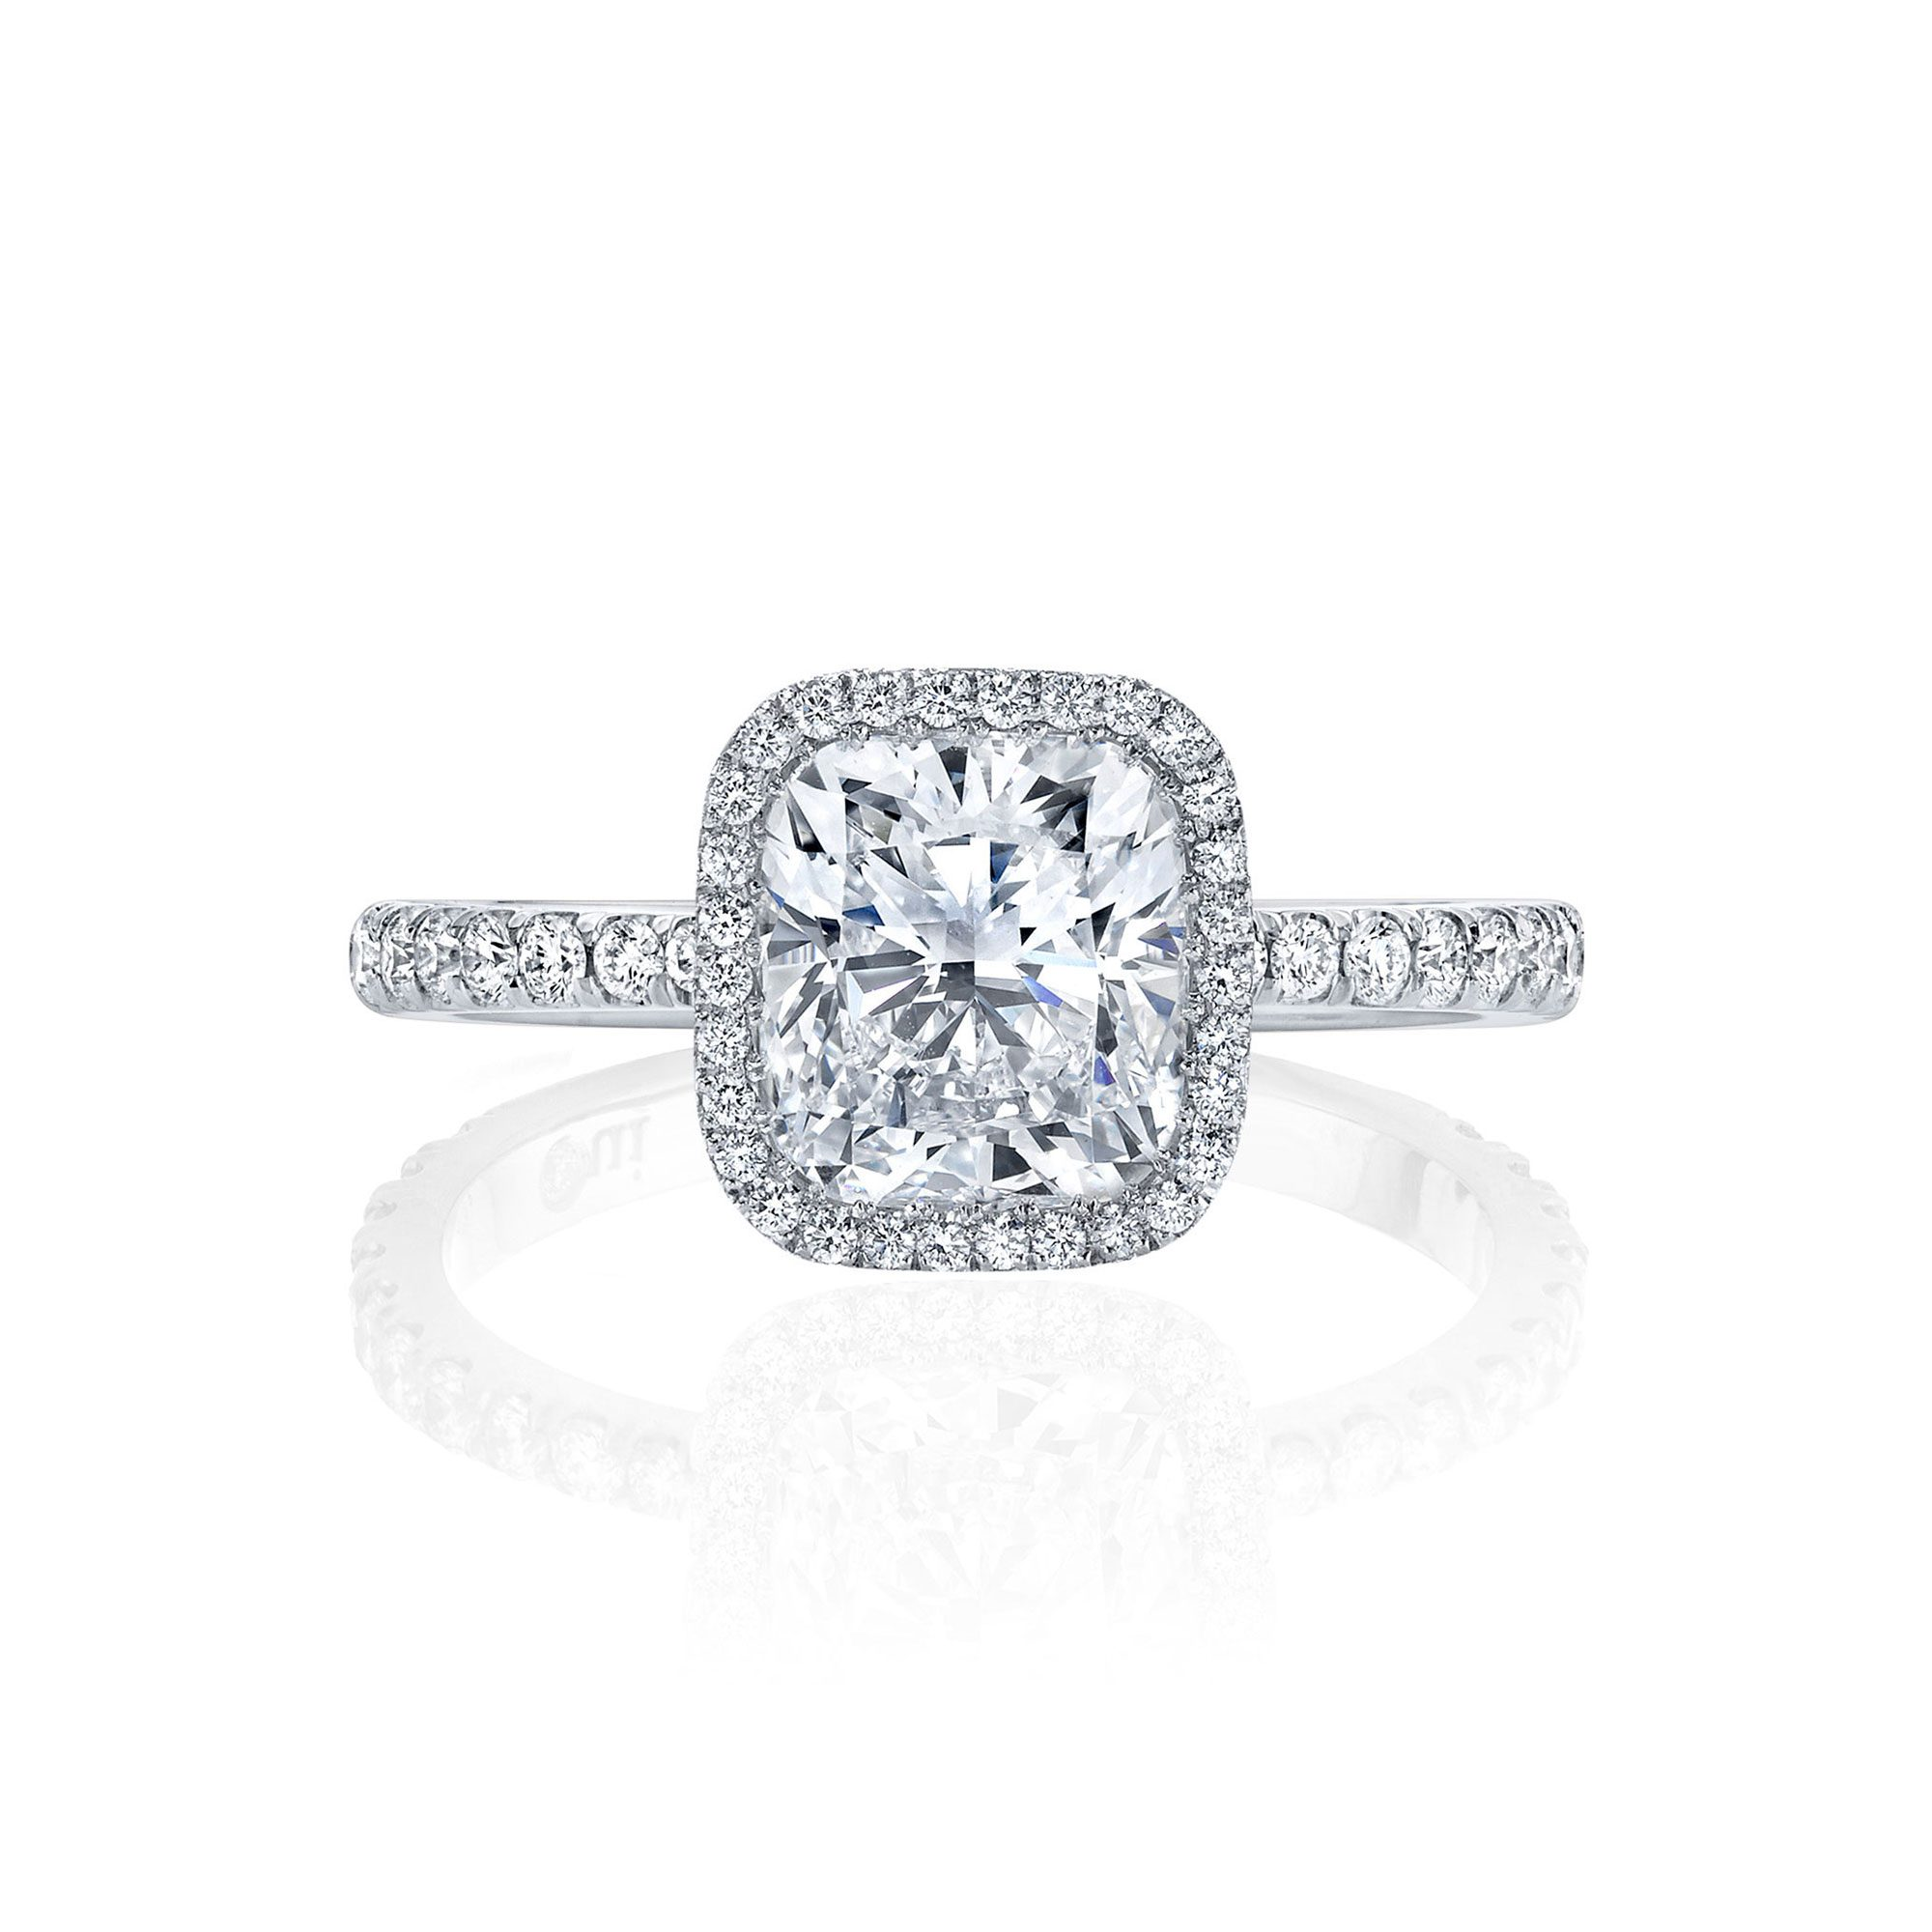 Eloise Seamless Halo® Engagement Ring Cushion Cut Ring with 18k white gold pavé band